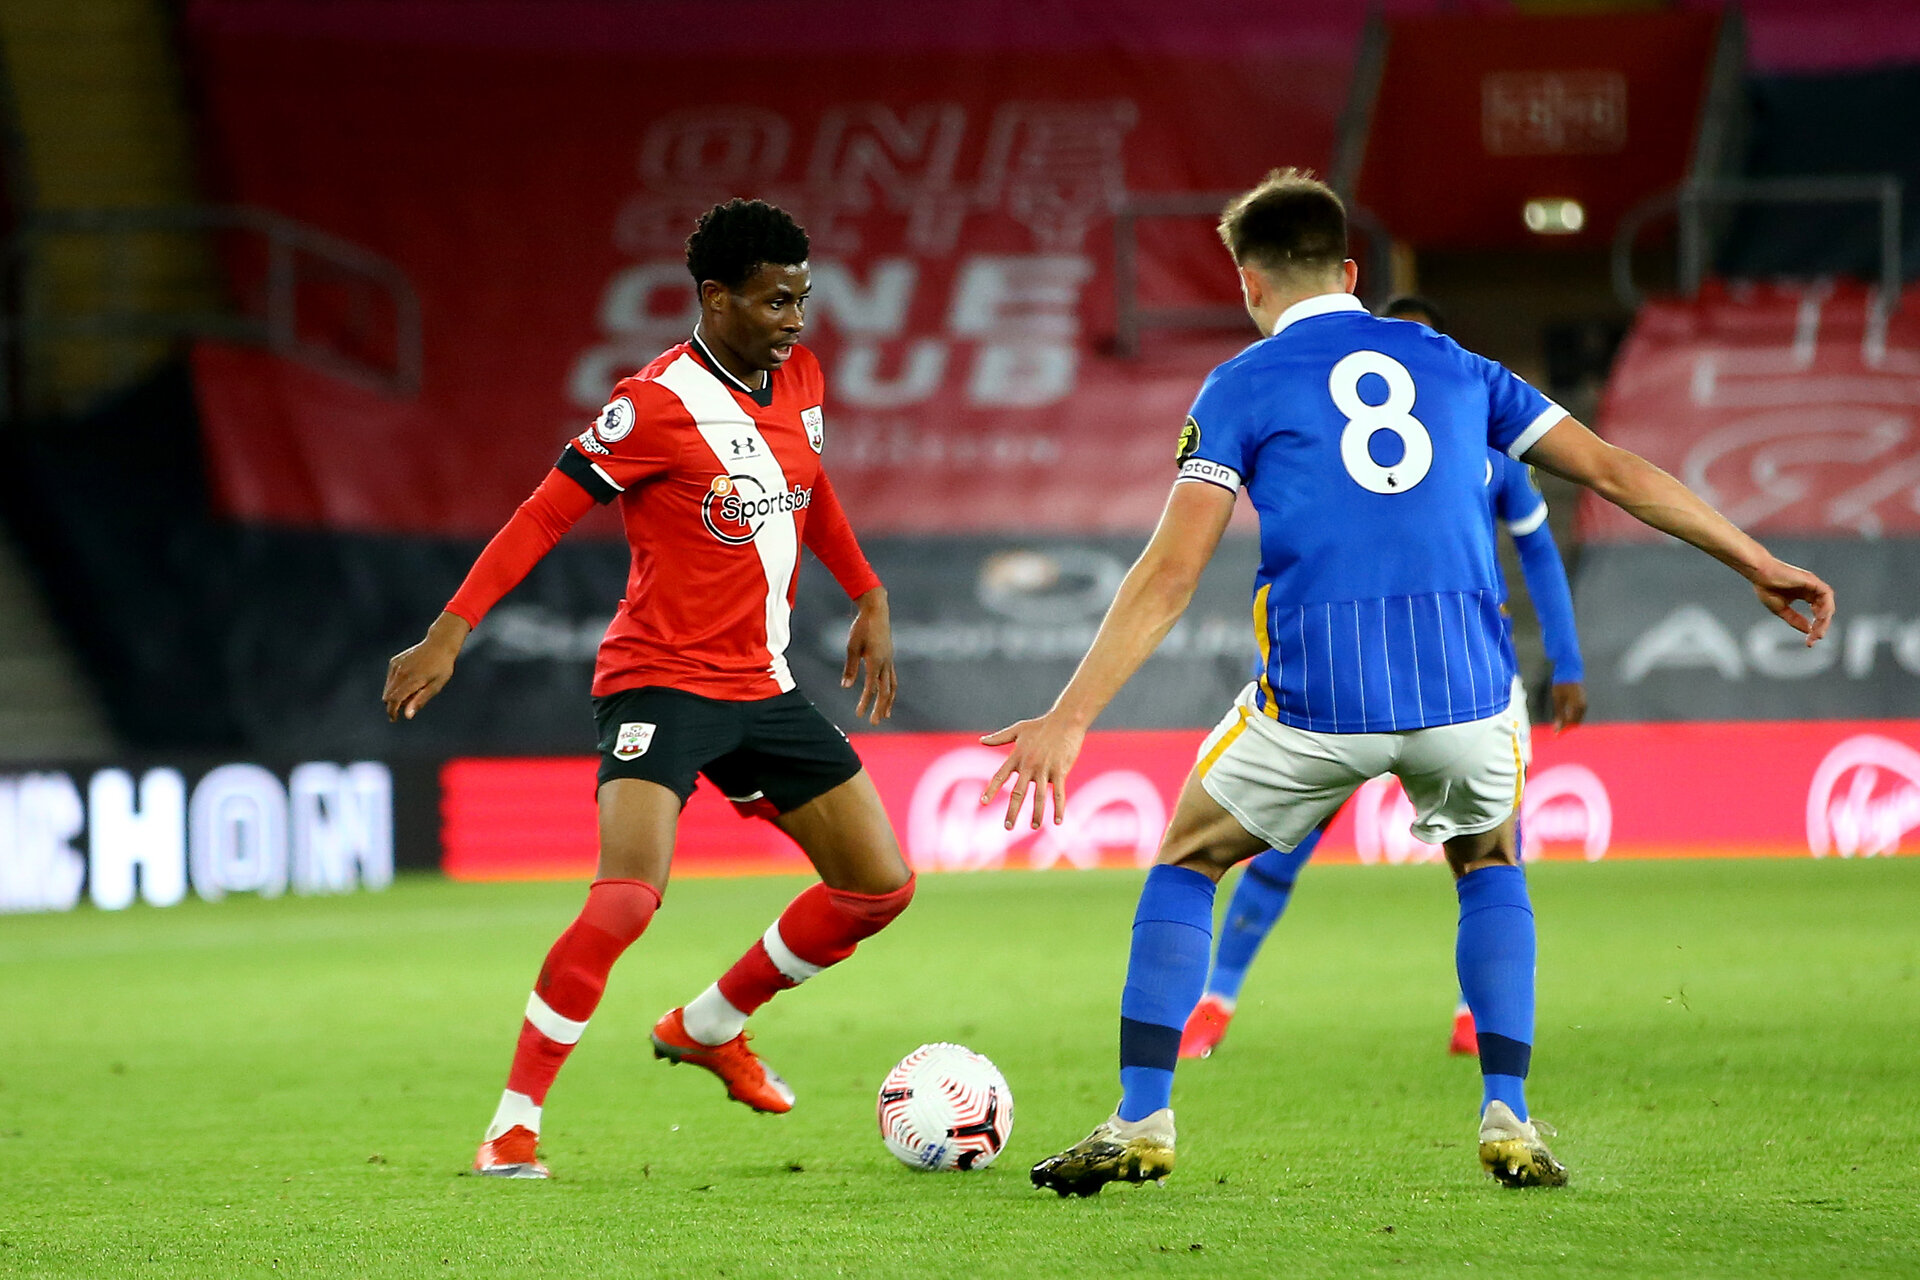 SOUTHAMPTON, ENGLAND - NOVEMBER 30: during the Premier League 2 match between Southampton FC B Team and Brighton & Hove Albion at the St Mary's Stadium on November 30, 2020 in Southampton, England. (Photo by Isabelle Field/Southampton FC via Getty Images)